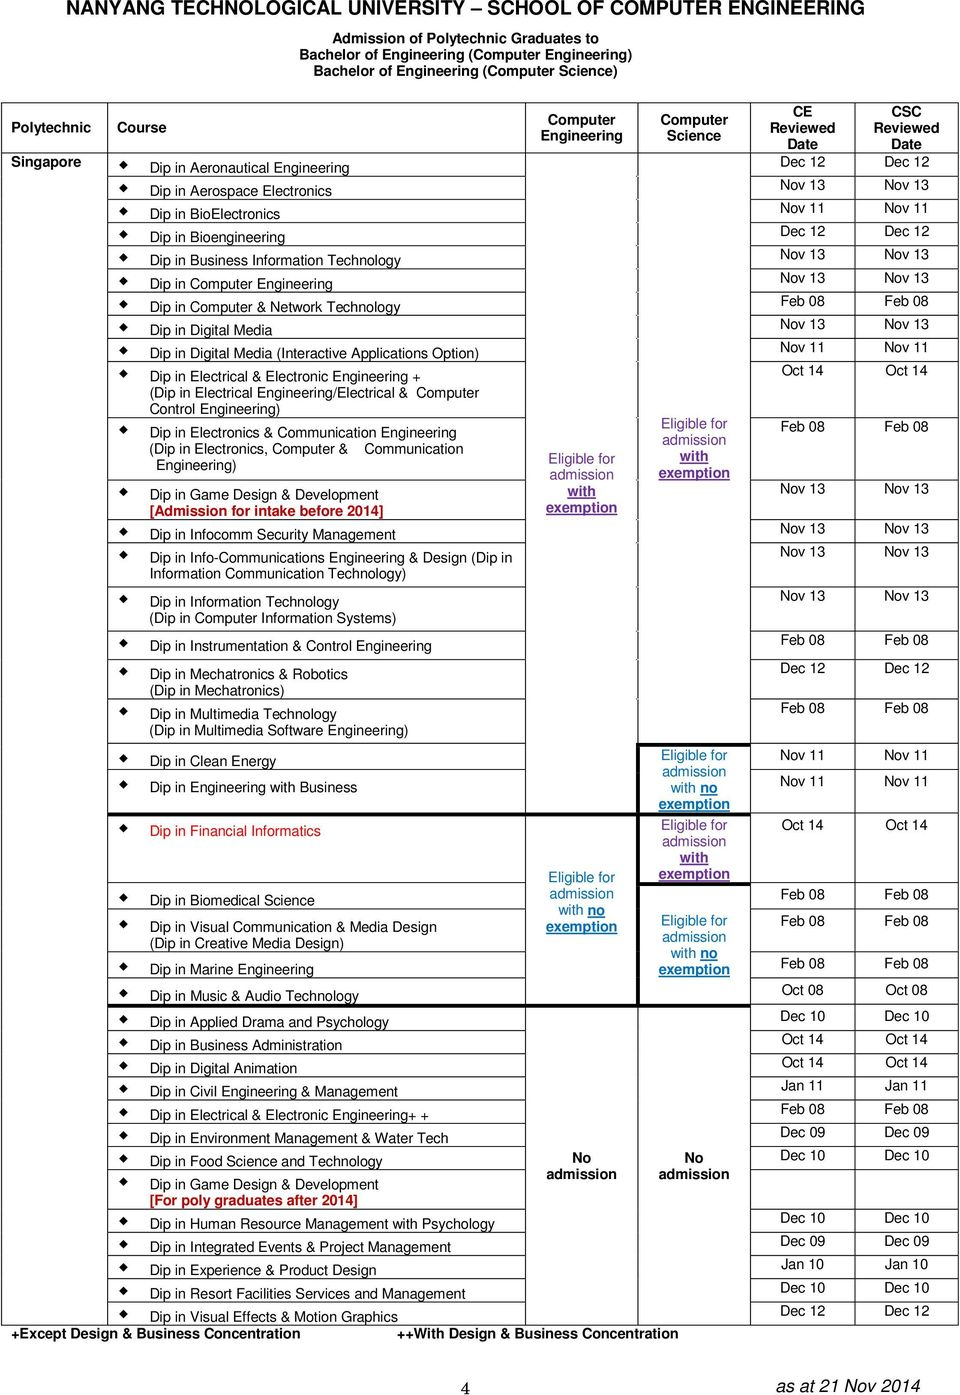 Development [Admission for intake before 2014] Dip in Infocomm Security Management Dip in Info-Communications & Design (Dip in Information Communication Technology) (Dip in Information Systems) Dip